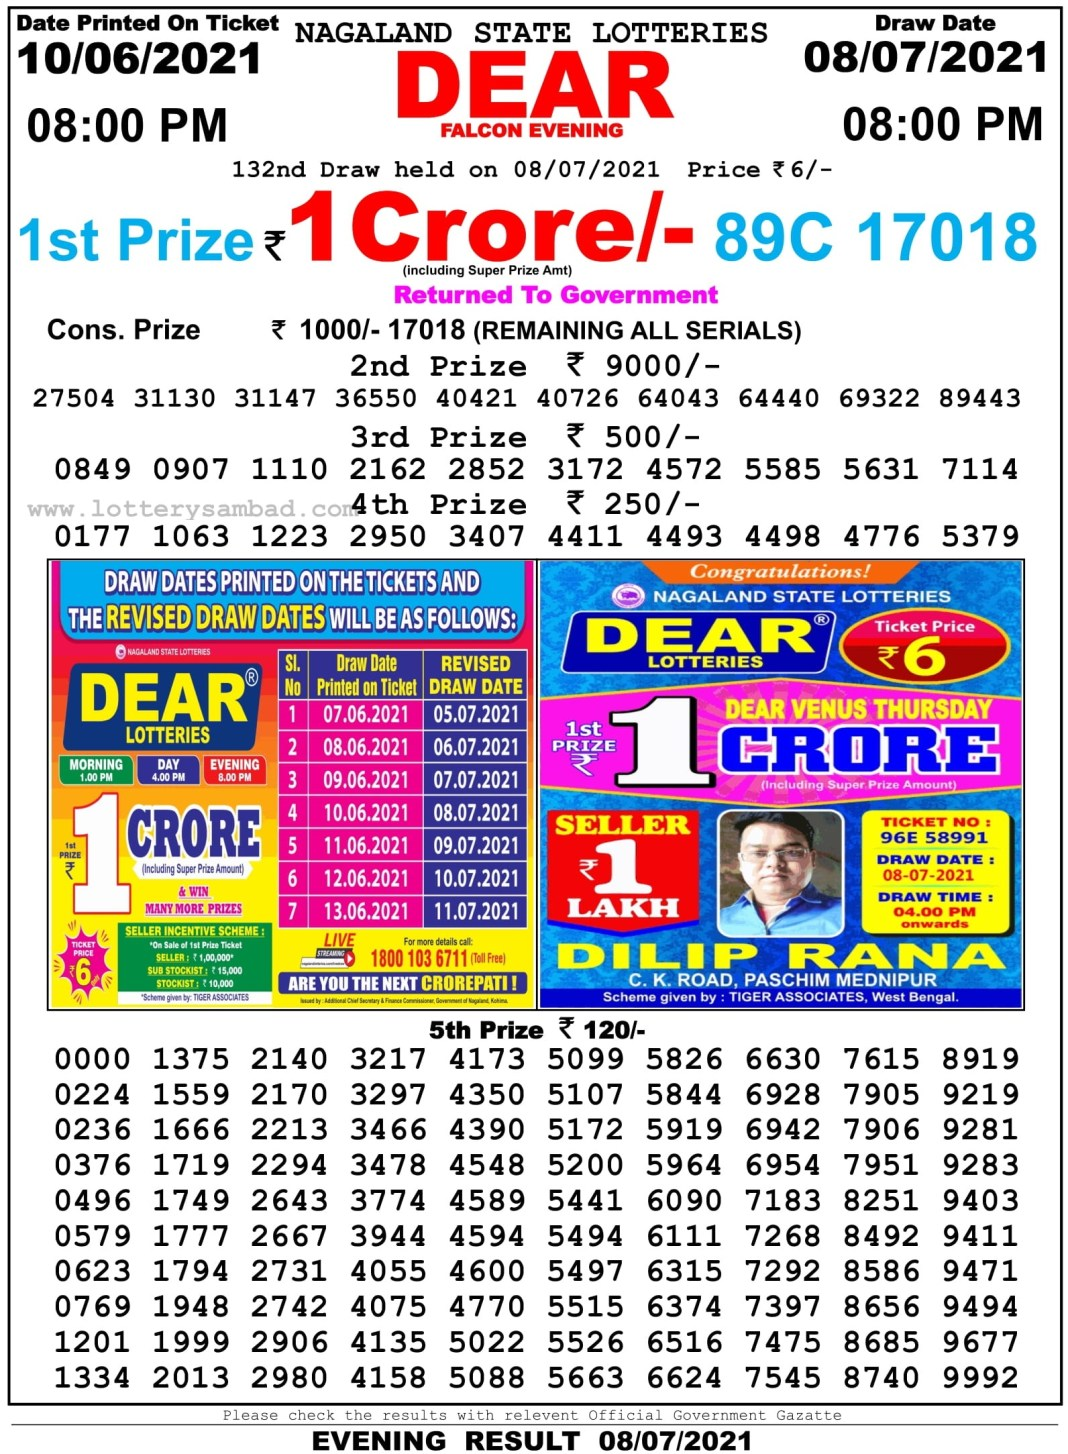 Nagaland State Lottery Result 8.7.2021 at 8 PM